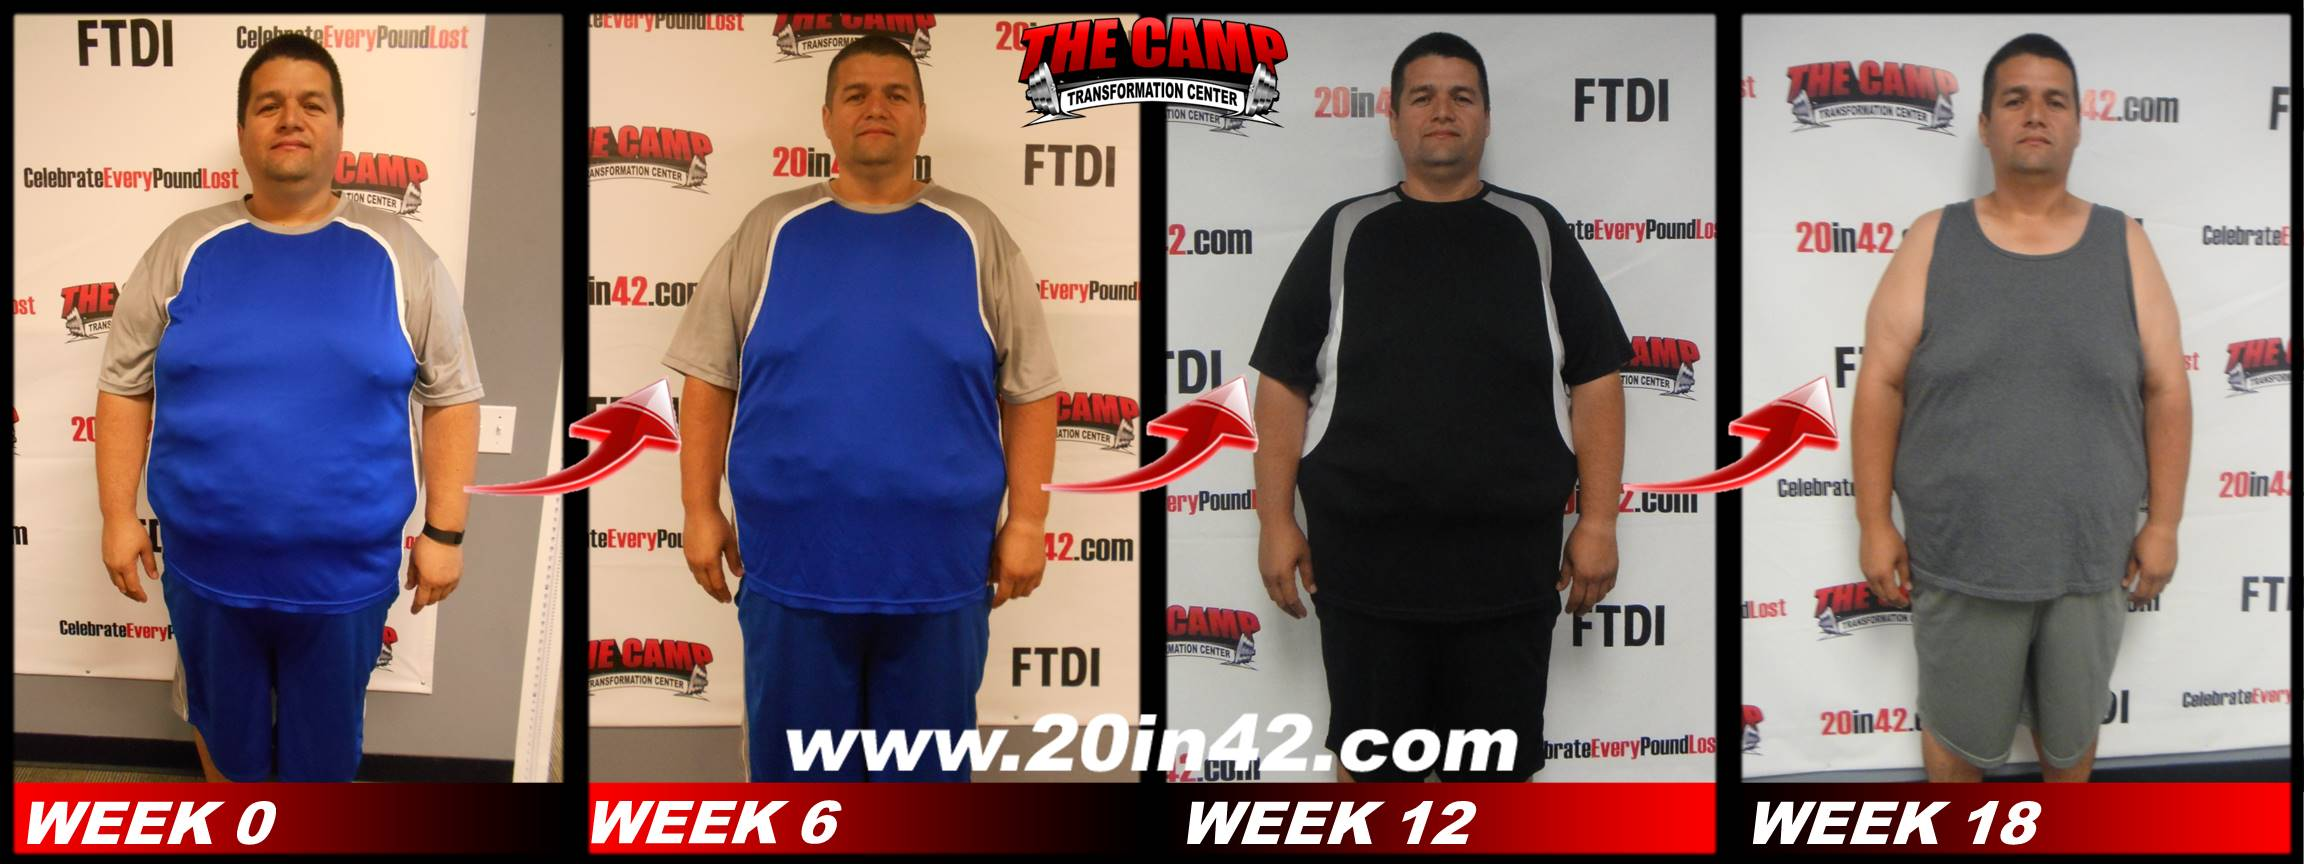 4 pictures of a man facing forward, comparing his weight loss after week 6, week 12, and week 18 in the weight loss challenge program